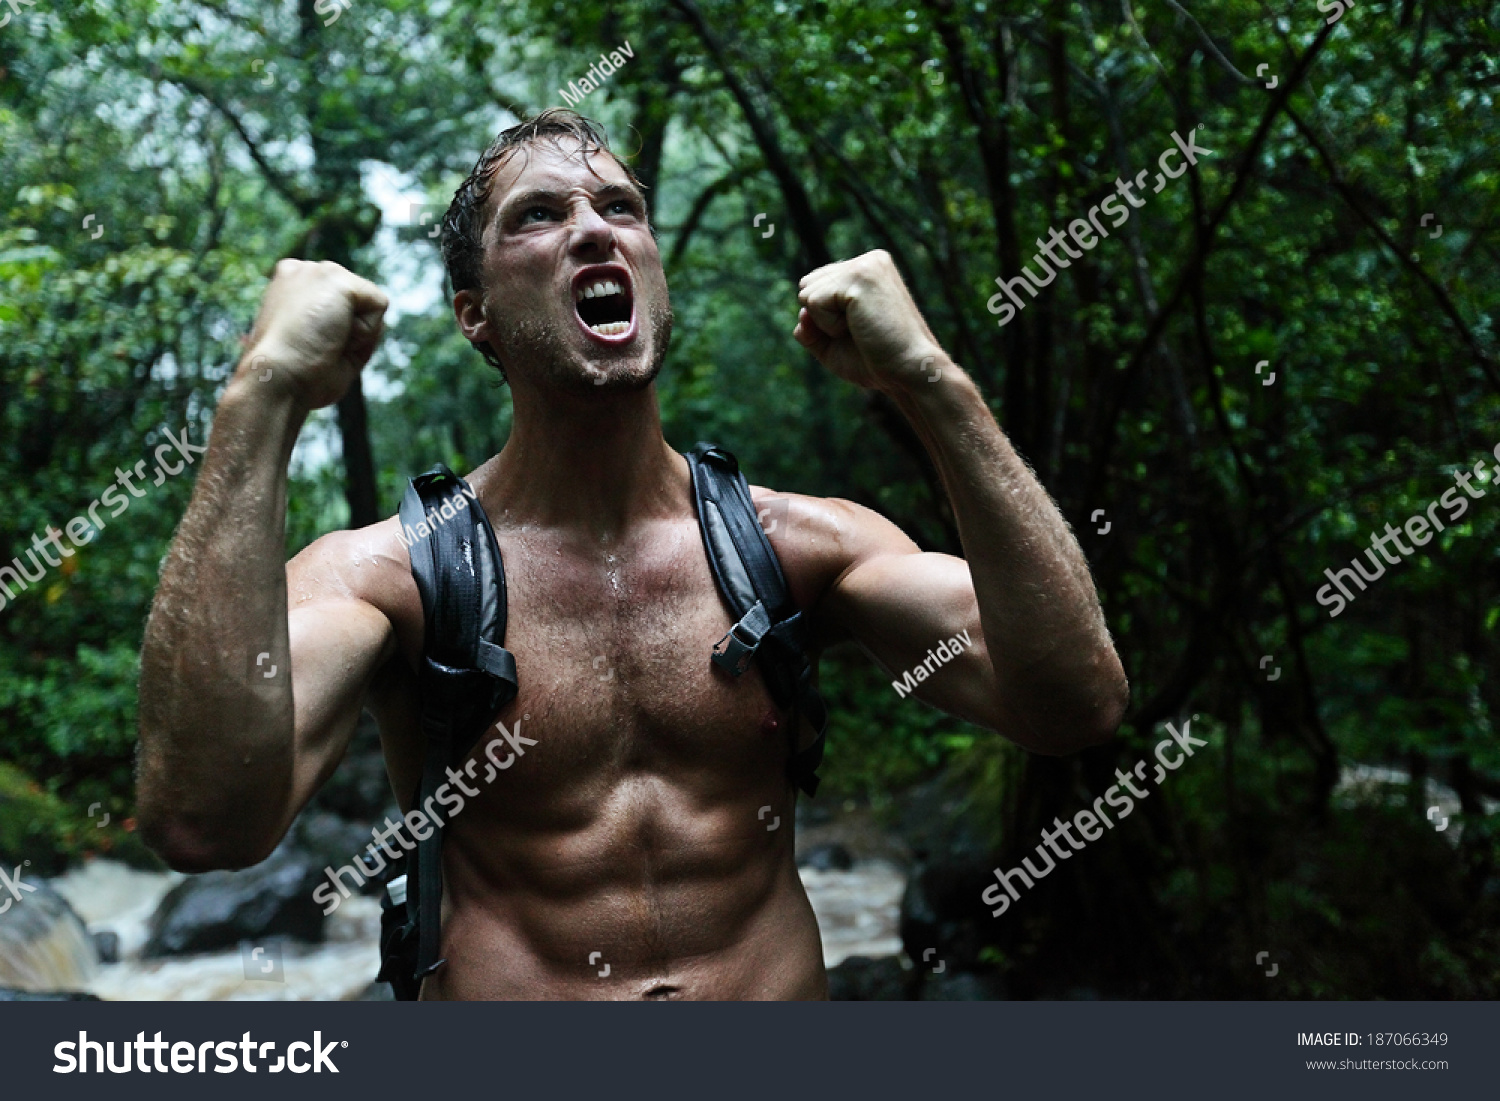 Image result for picture of dark haired man in jungle